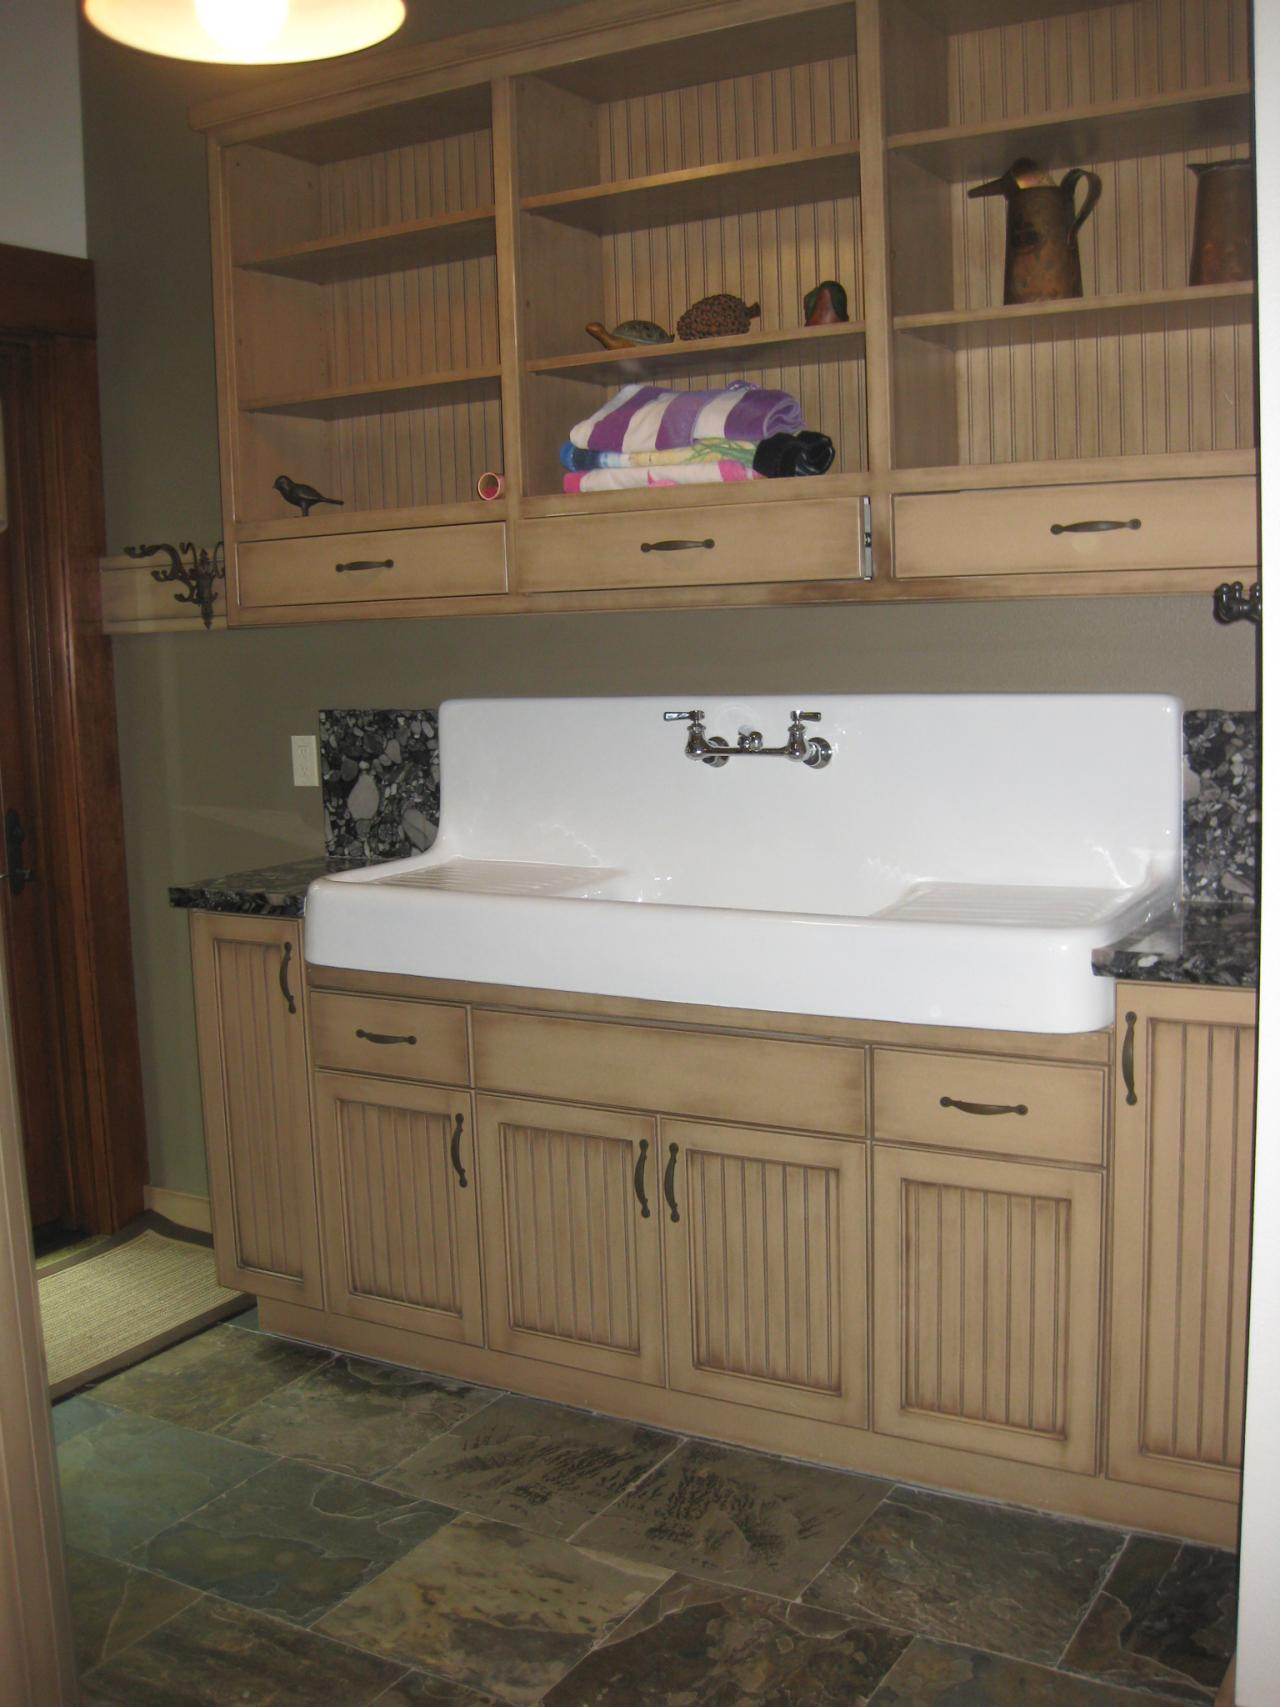 Beautiful Bathroom : Wonderful Farmhouse Sink Bathroom Vanity Picture Of Fresh pertaining to New Farmhouse Sink In Bathroom